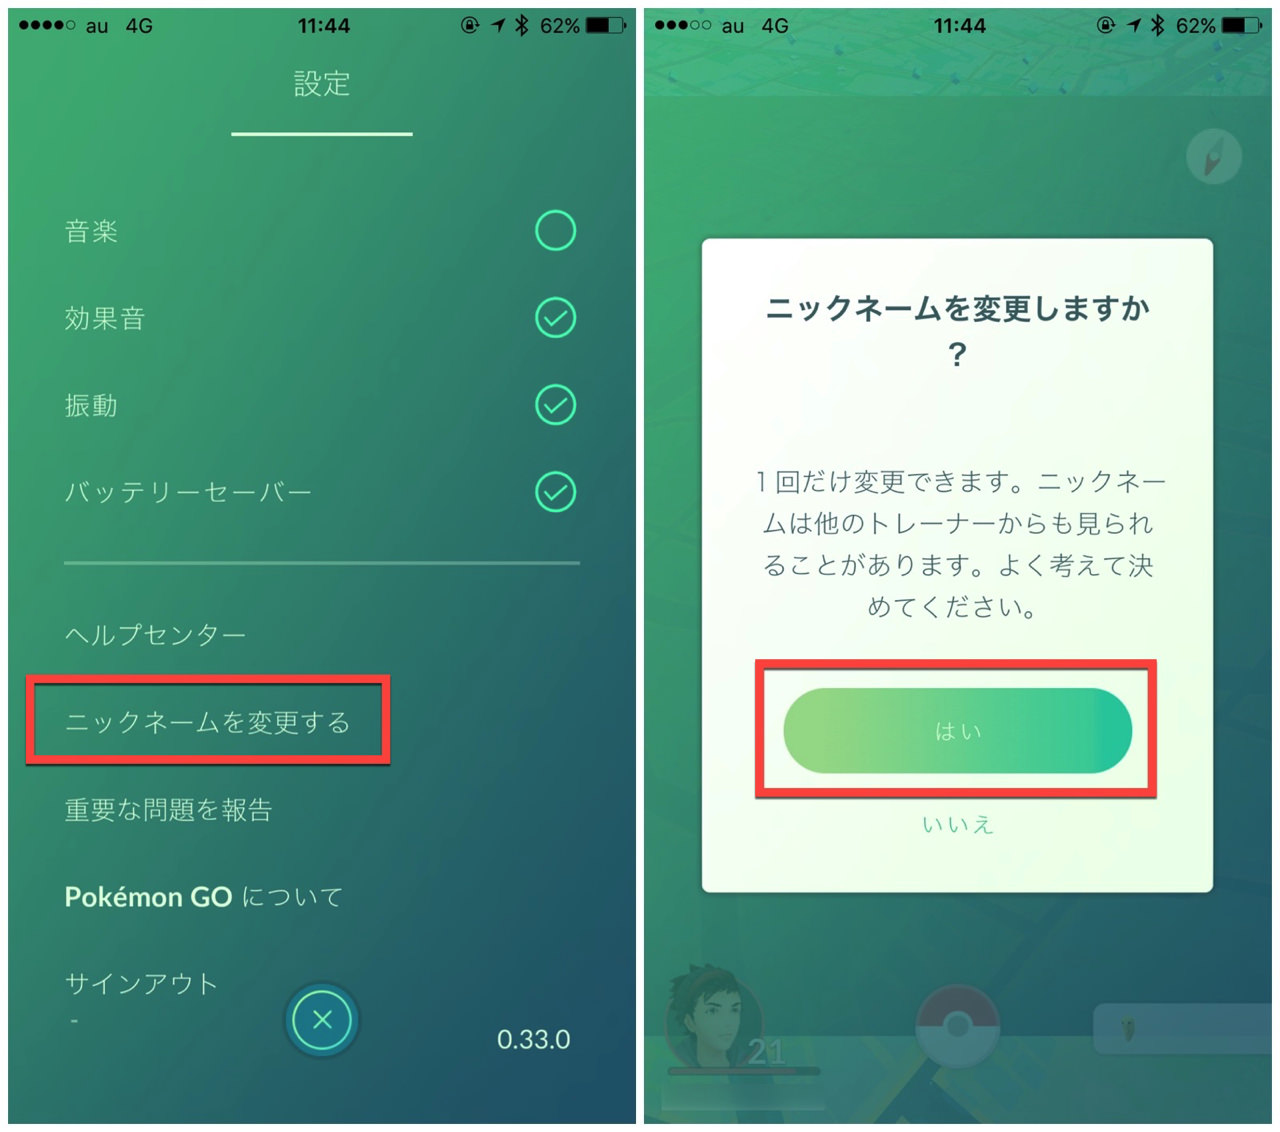 How to change nickname trainer1